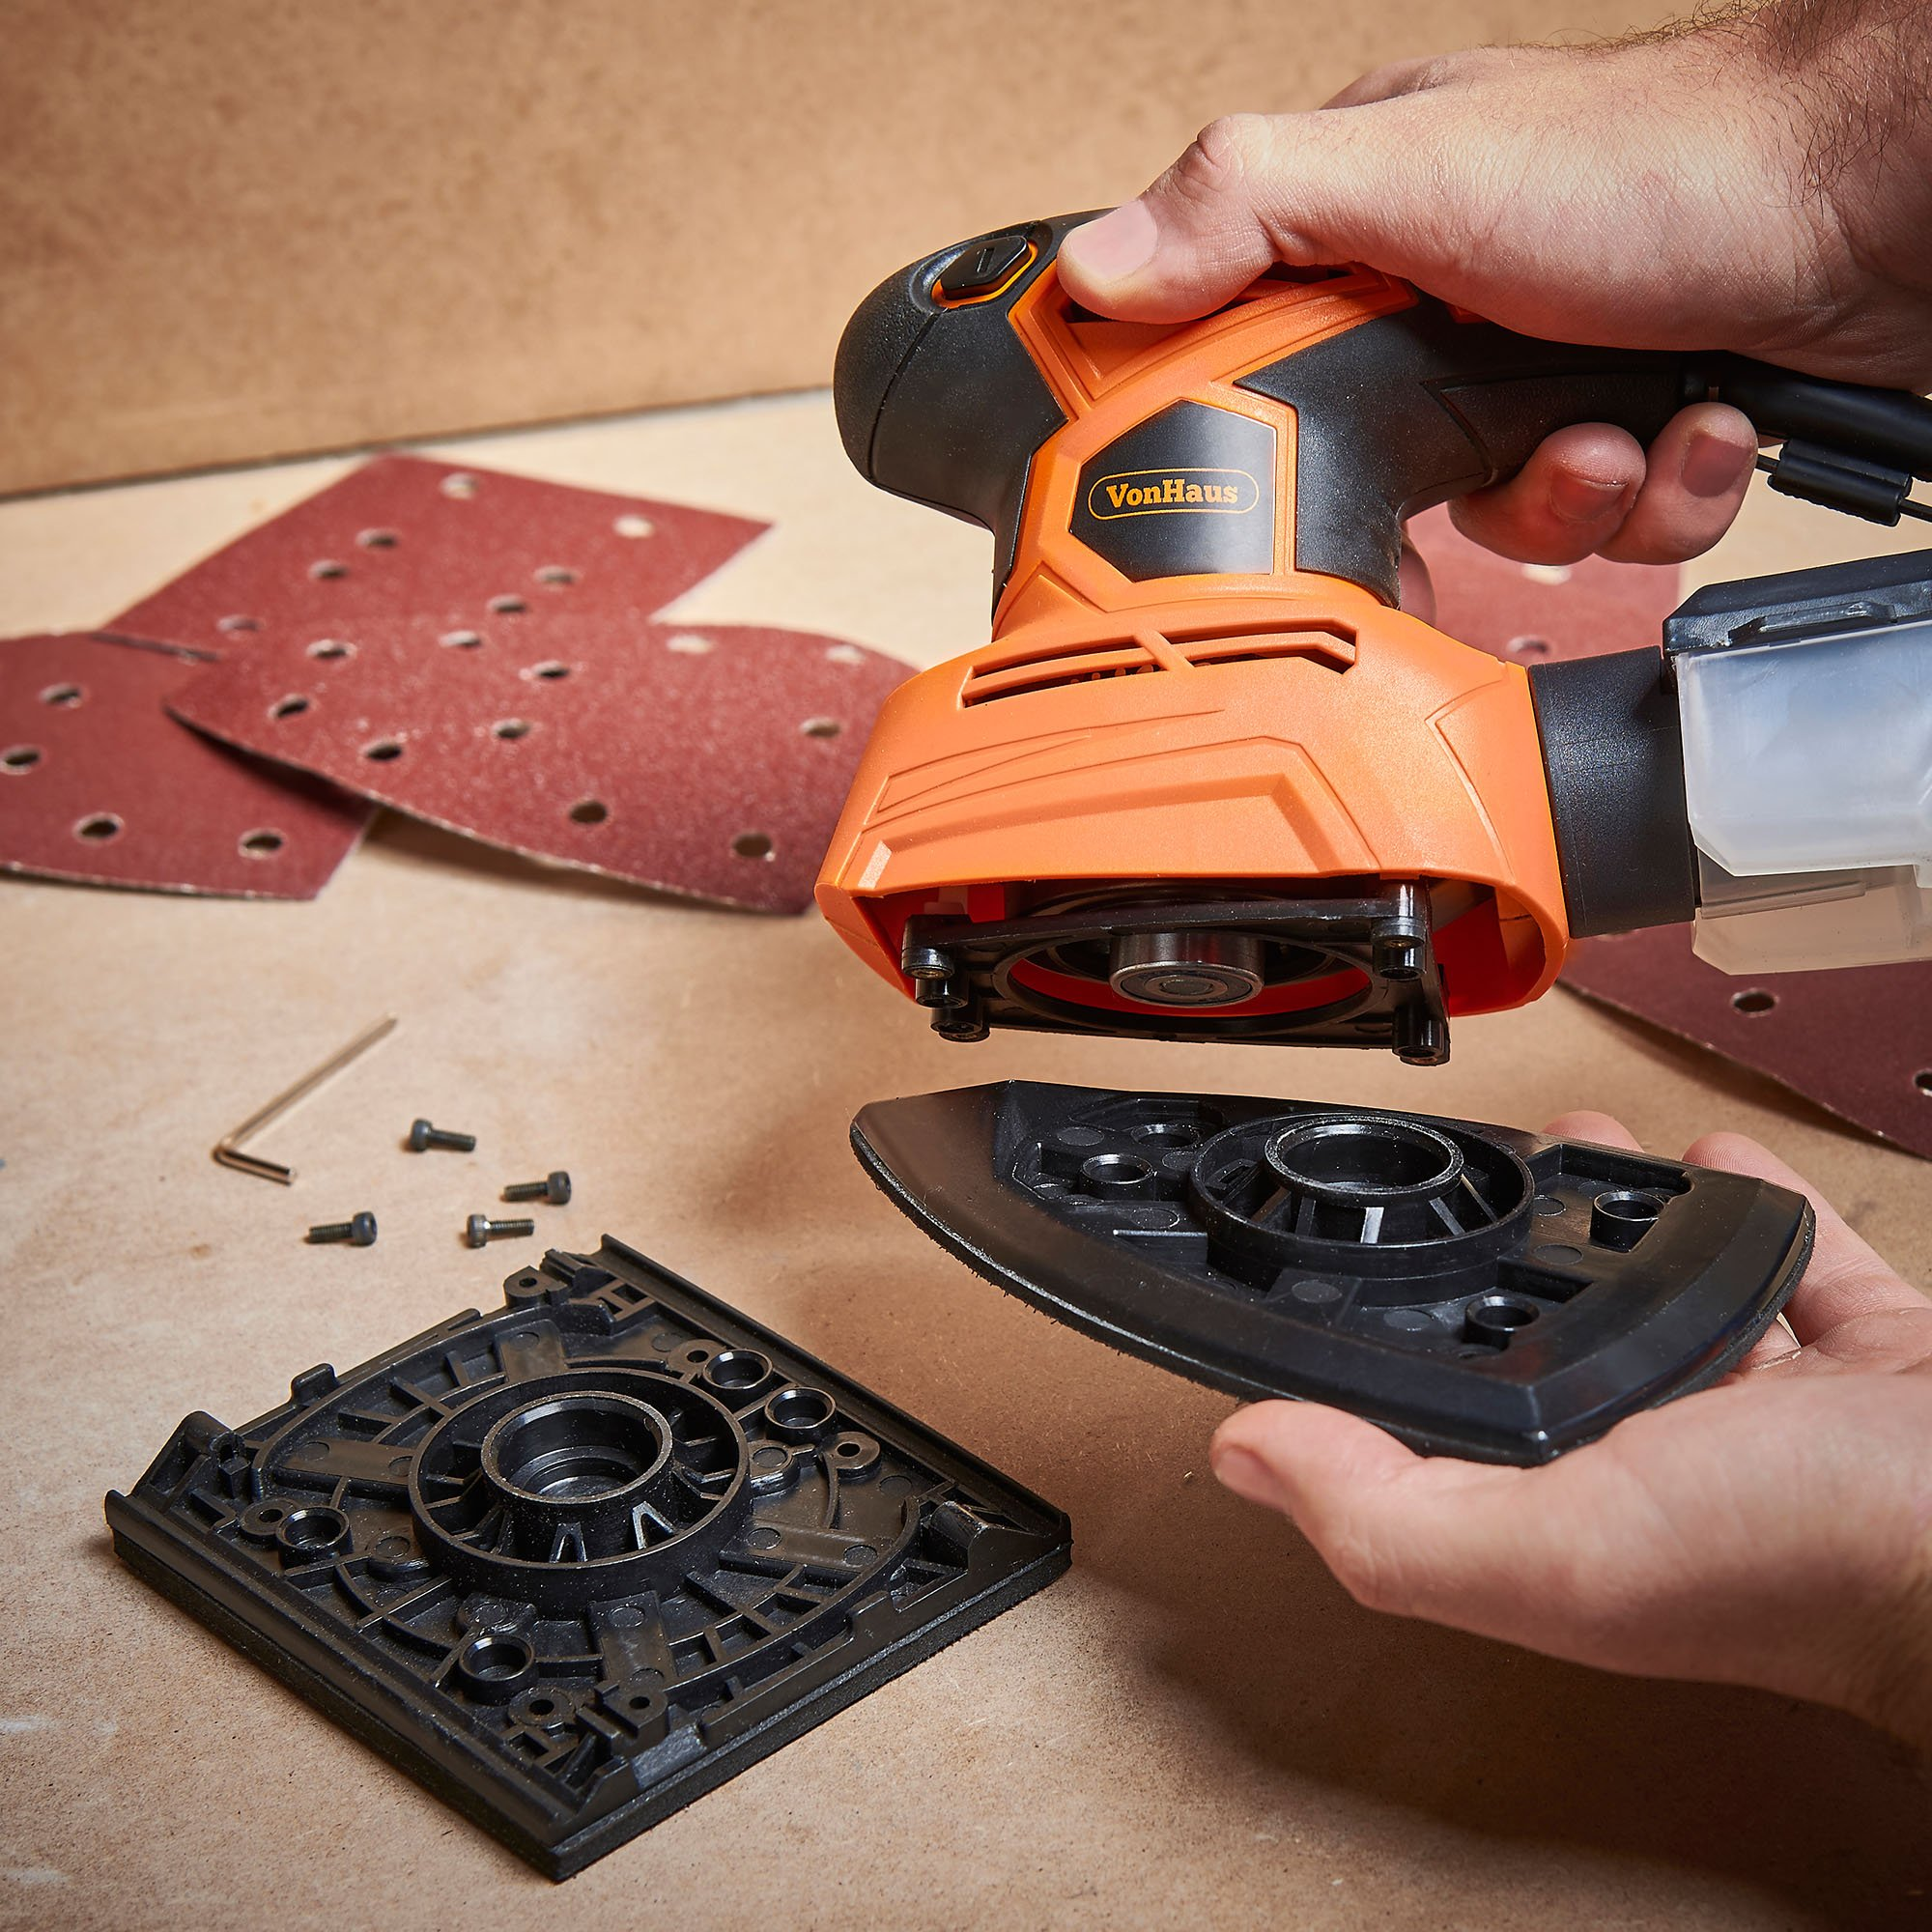 VonHaus 1.1A 2 in 1 Sheet & Detail Sander - 14000 RPM with 6 Sanding Sheets Included - Multi-Use, Compact Lightweight Design with Dust Extraction System and 6ft Power Cord by VonHaus (Image #4)